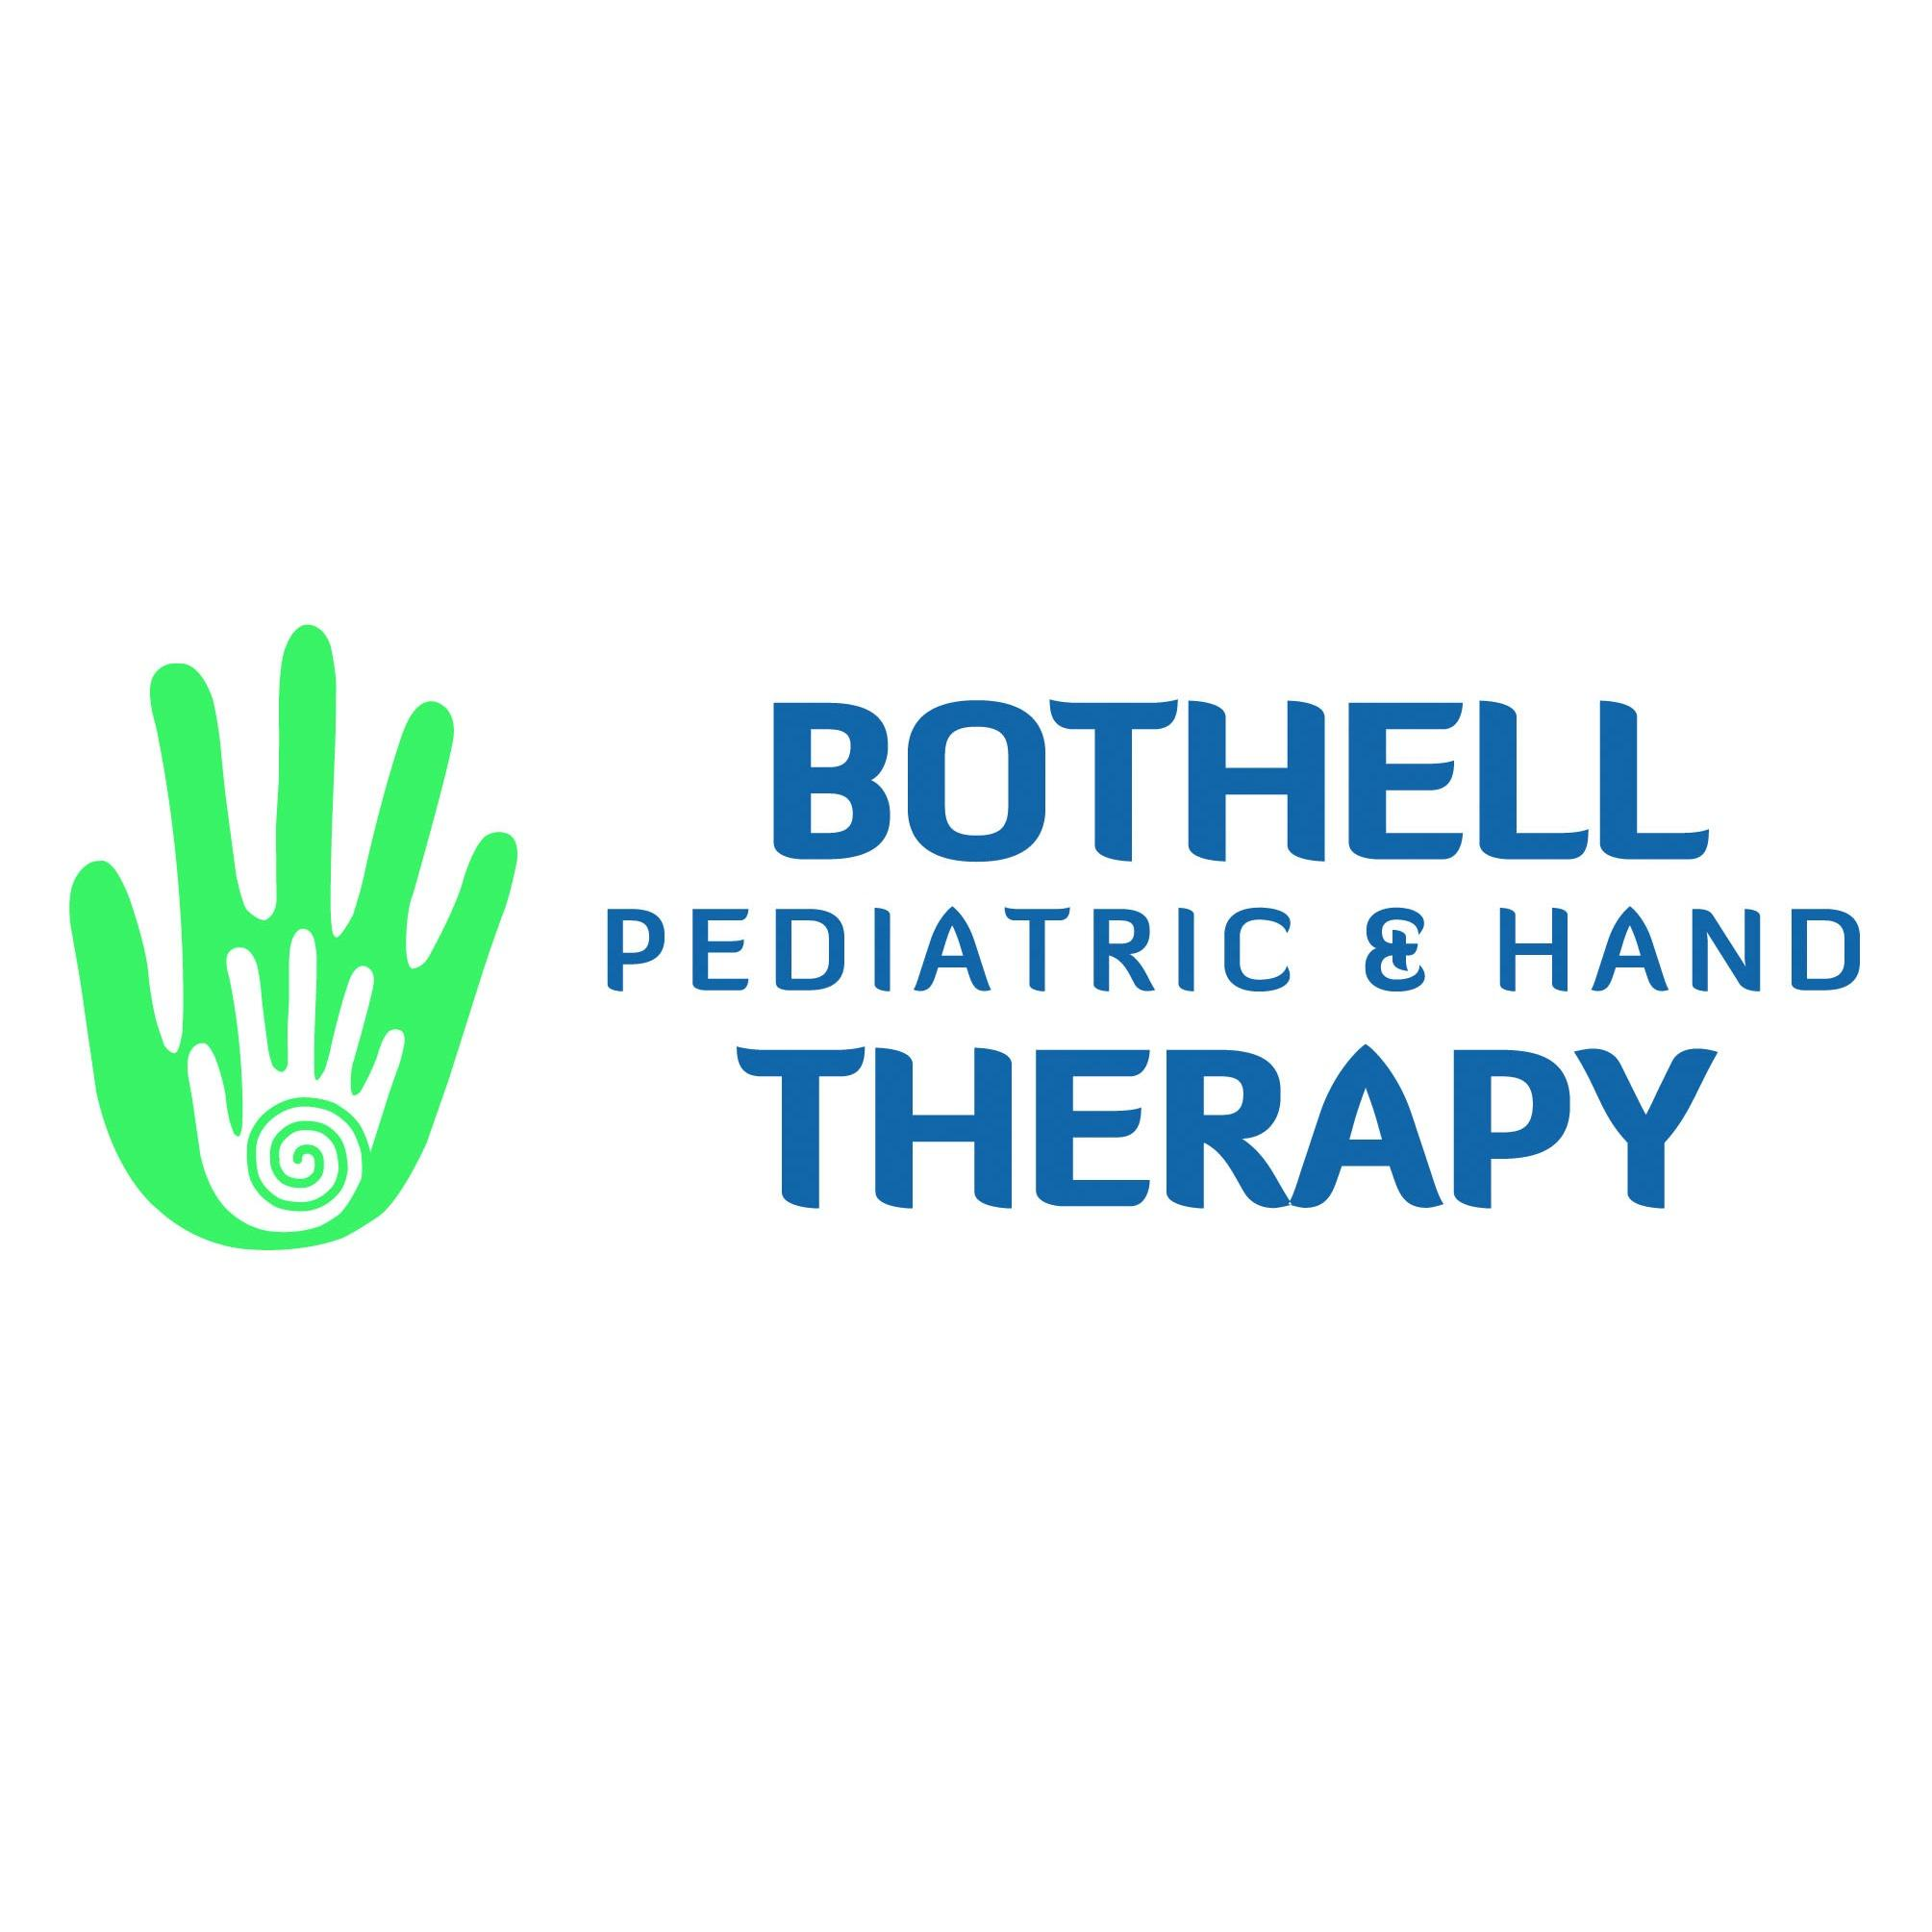 Bothell Pediatric & Hand Therapy